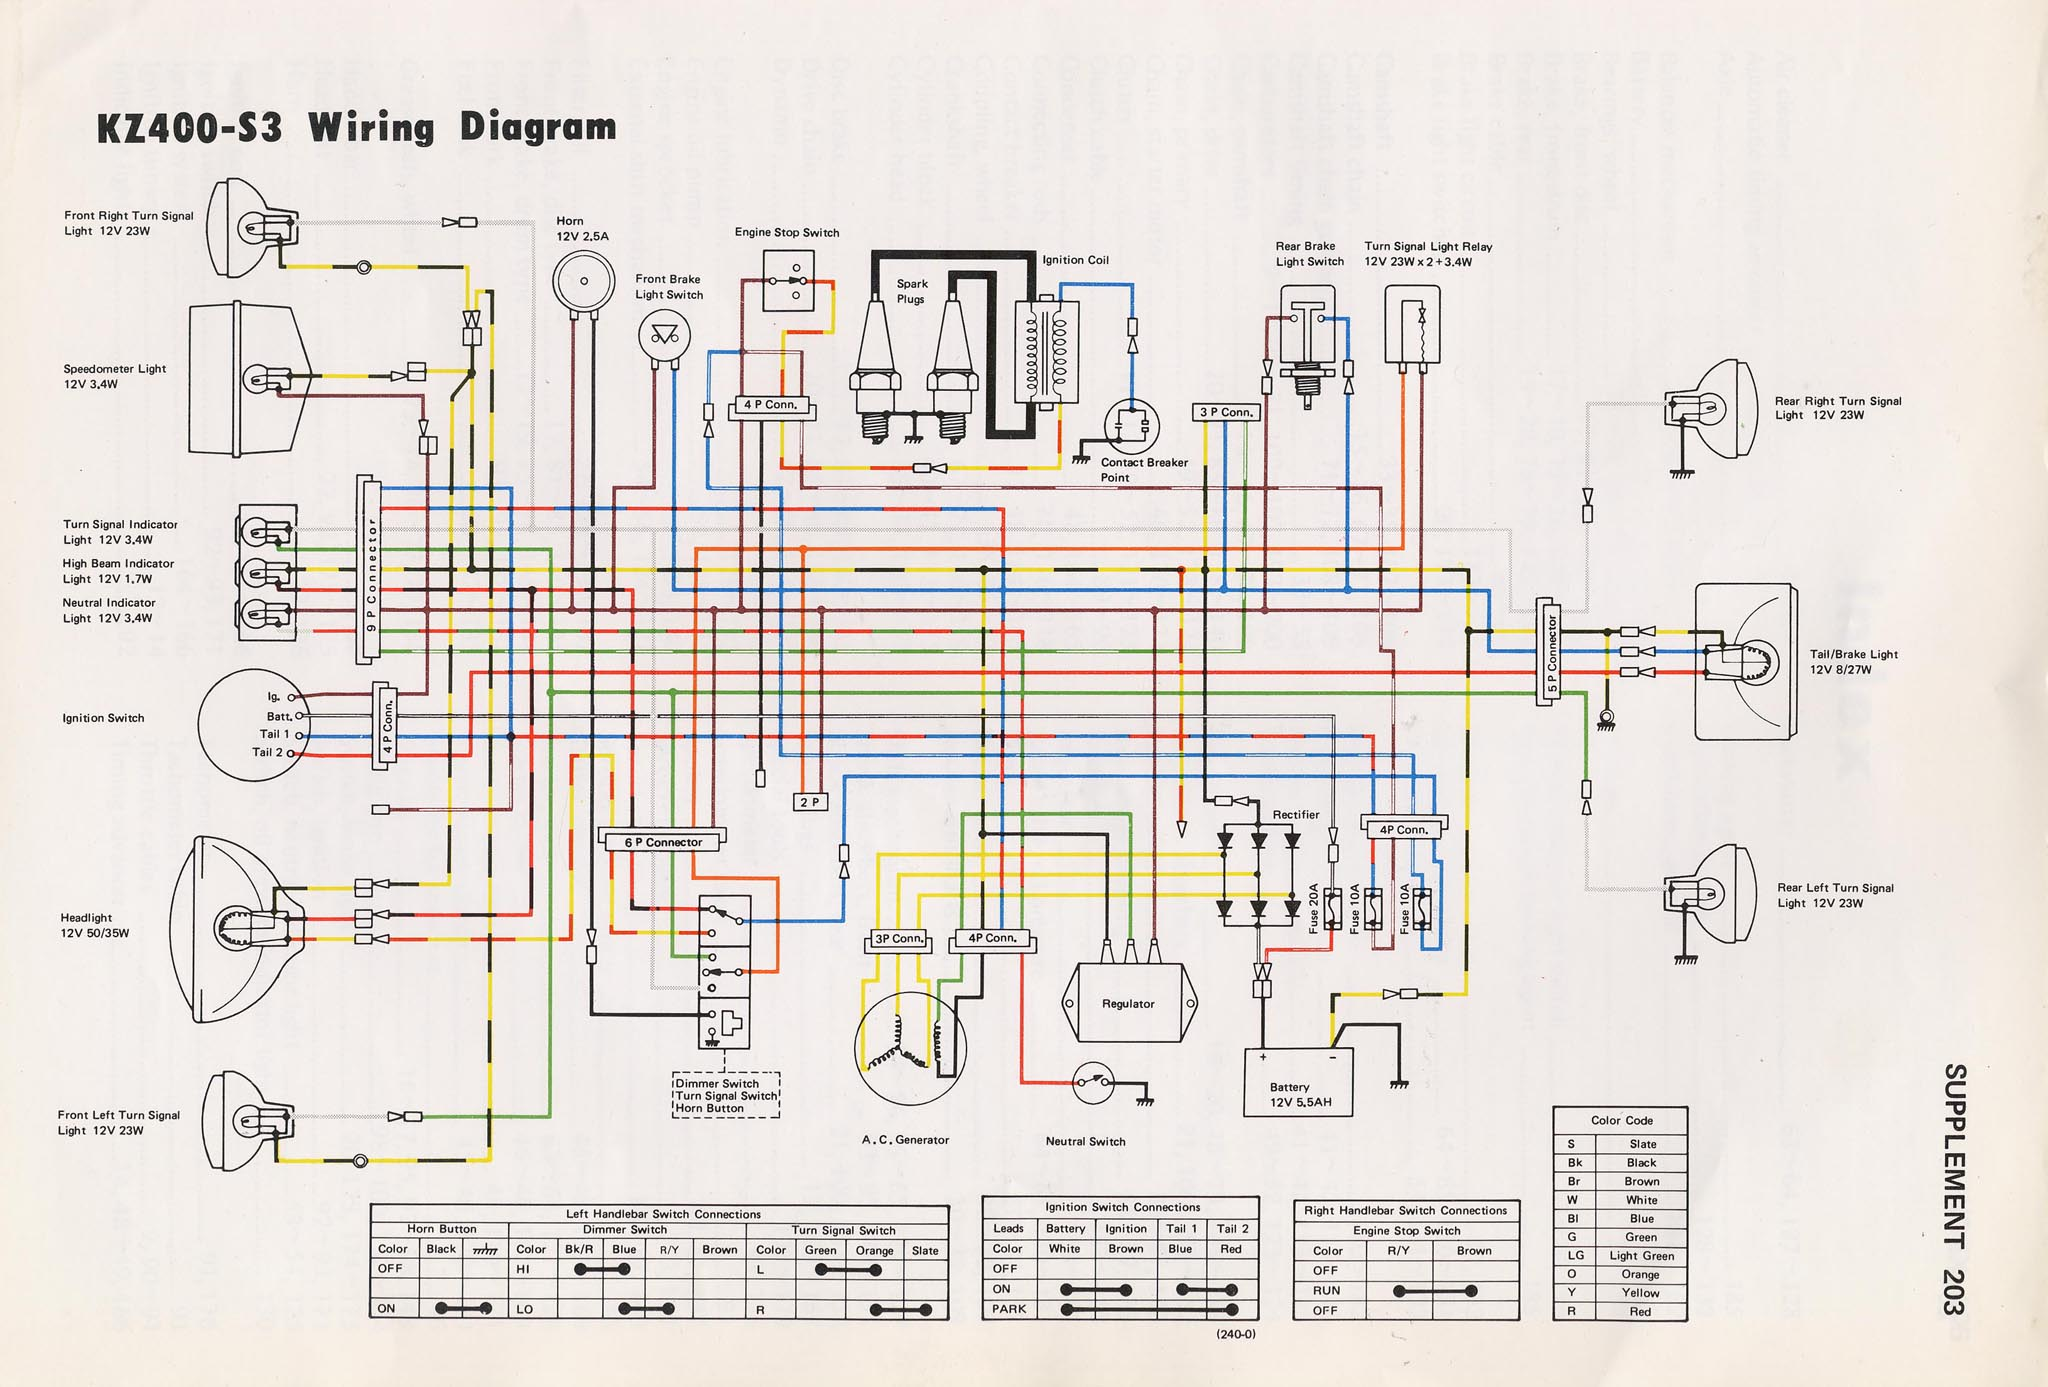 1975 Kawasaki Kz400 Wiring Diagram Great Installation Of G5 100 Library Rh 31 Skriptoase De 1973 Parnelli Jones Green